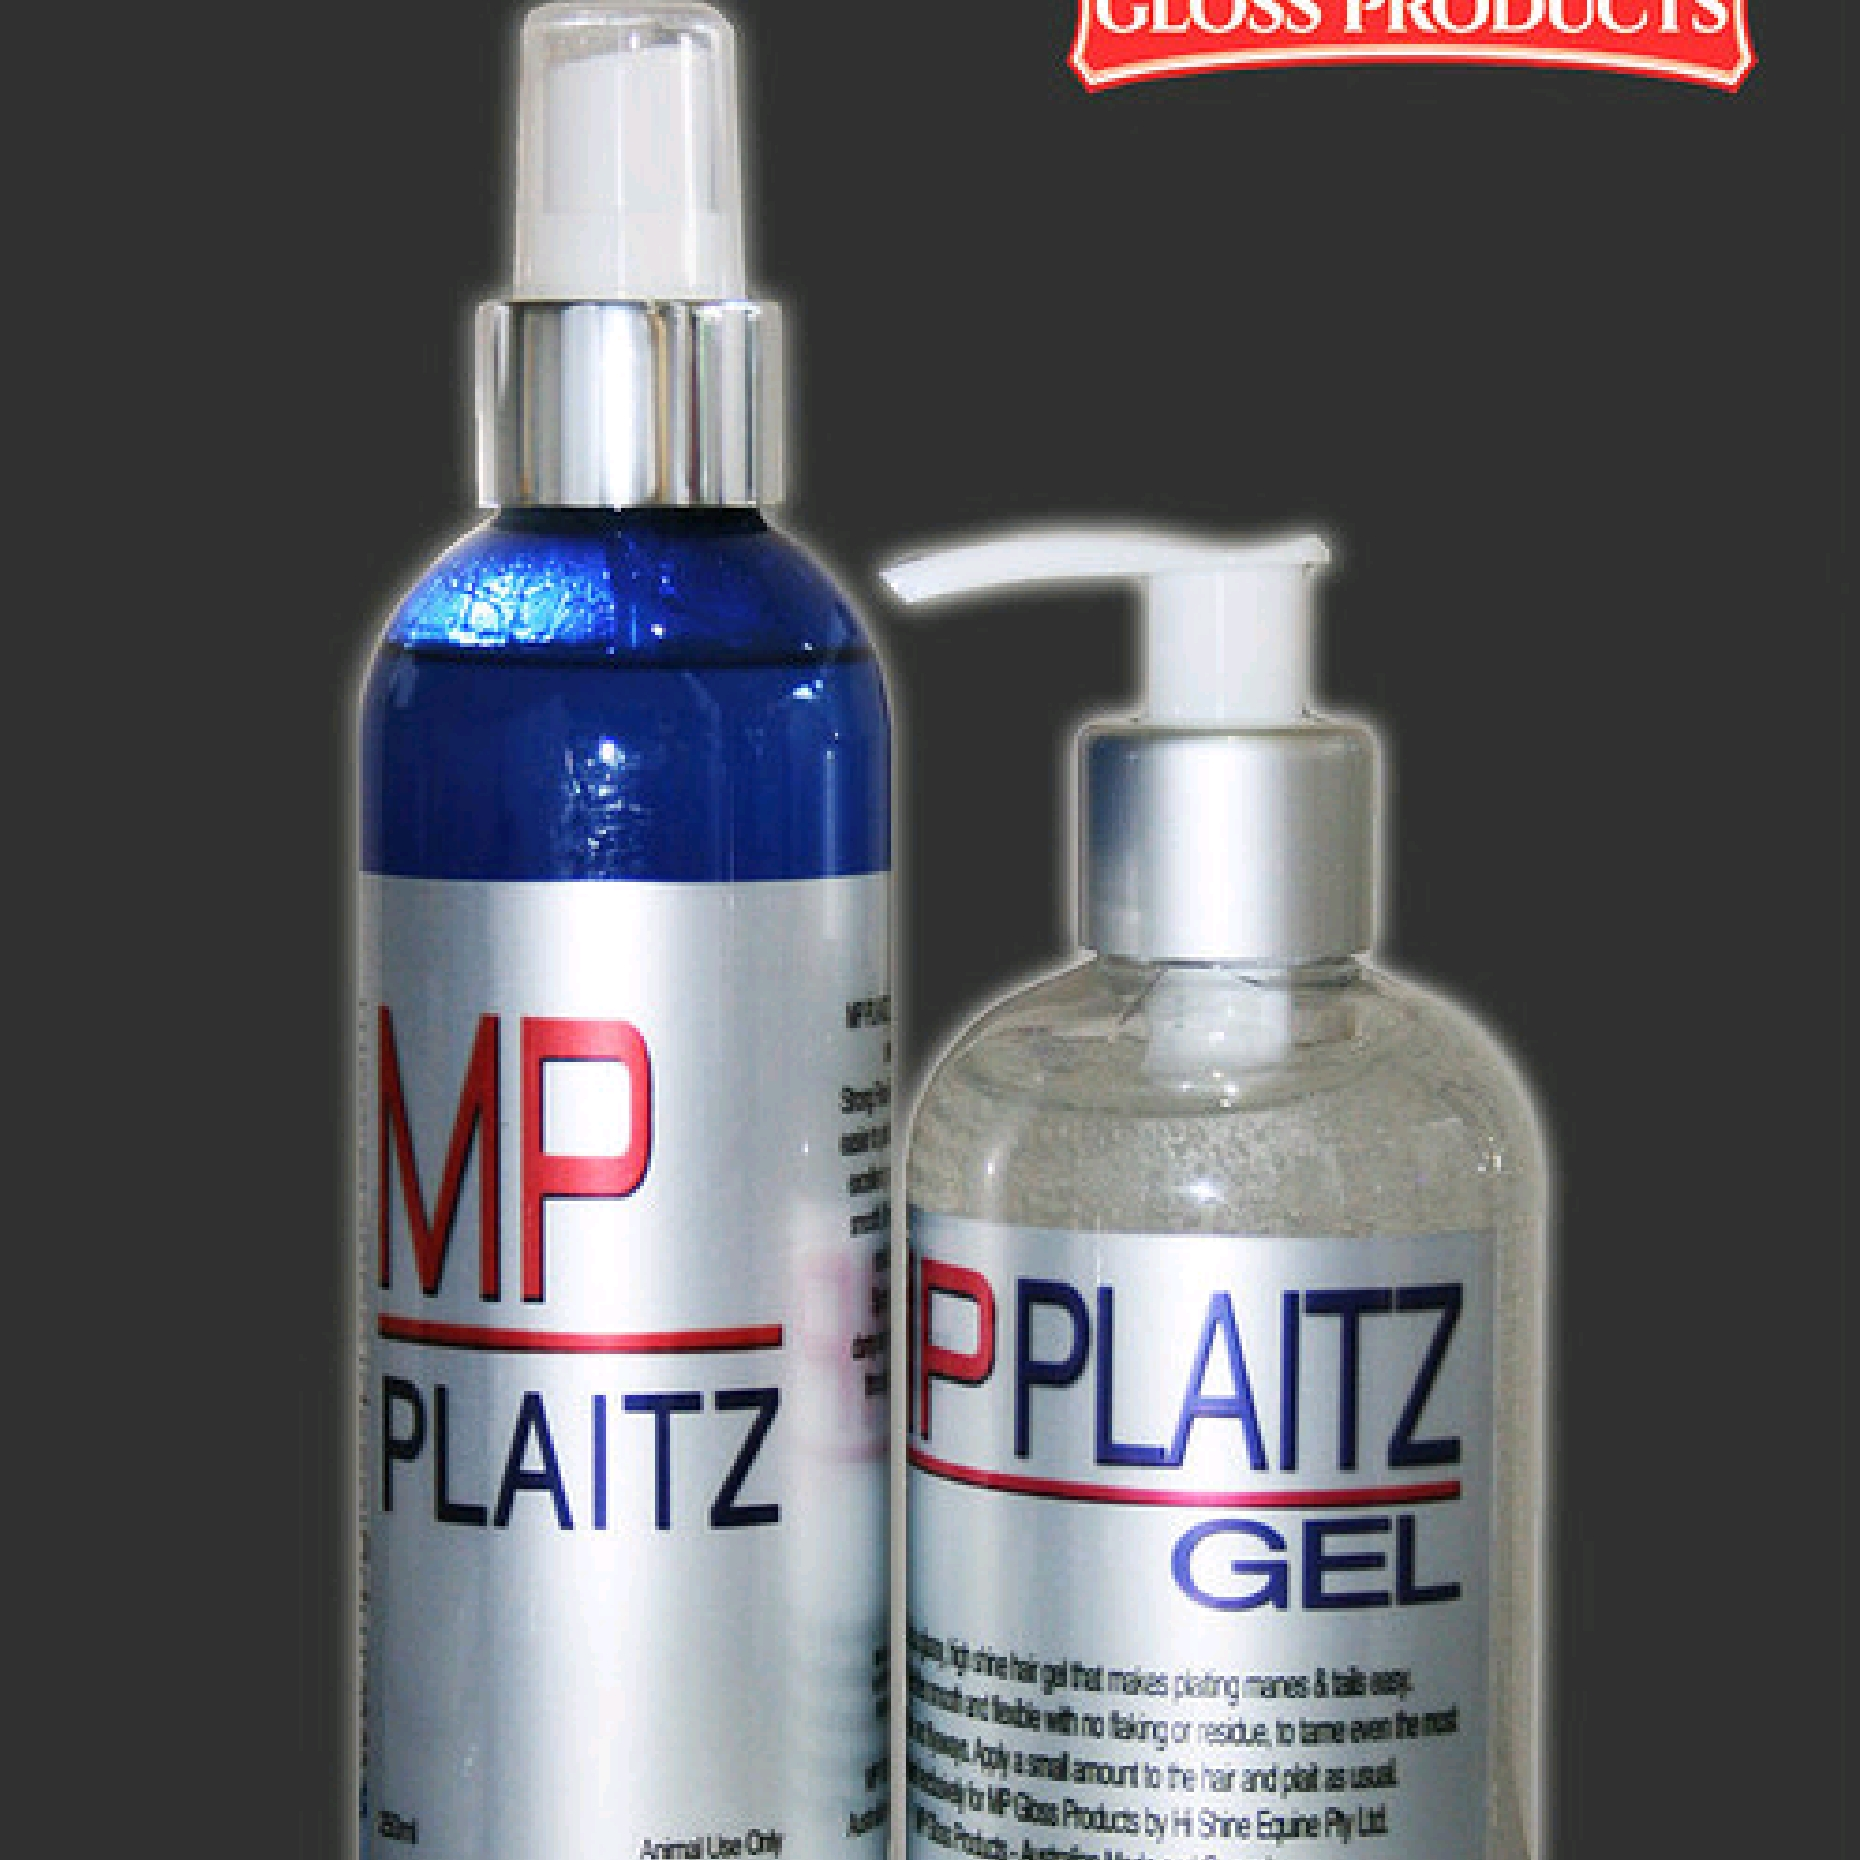 MP Plaitz Spray